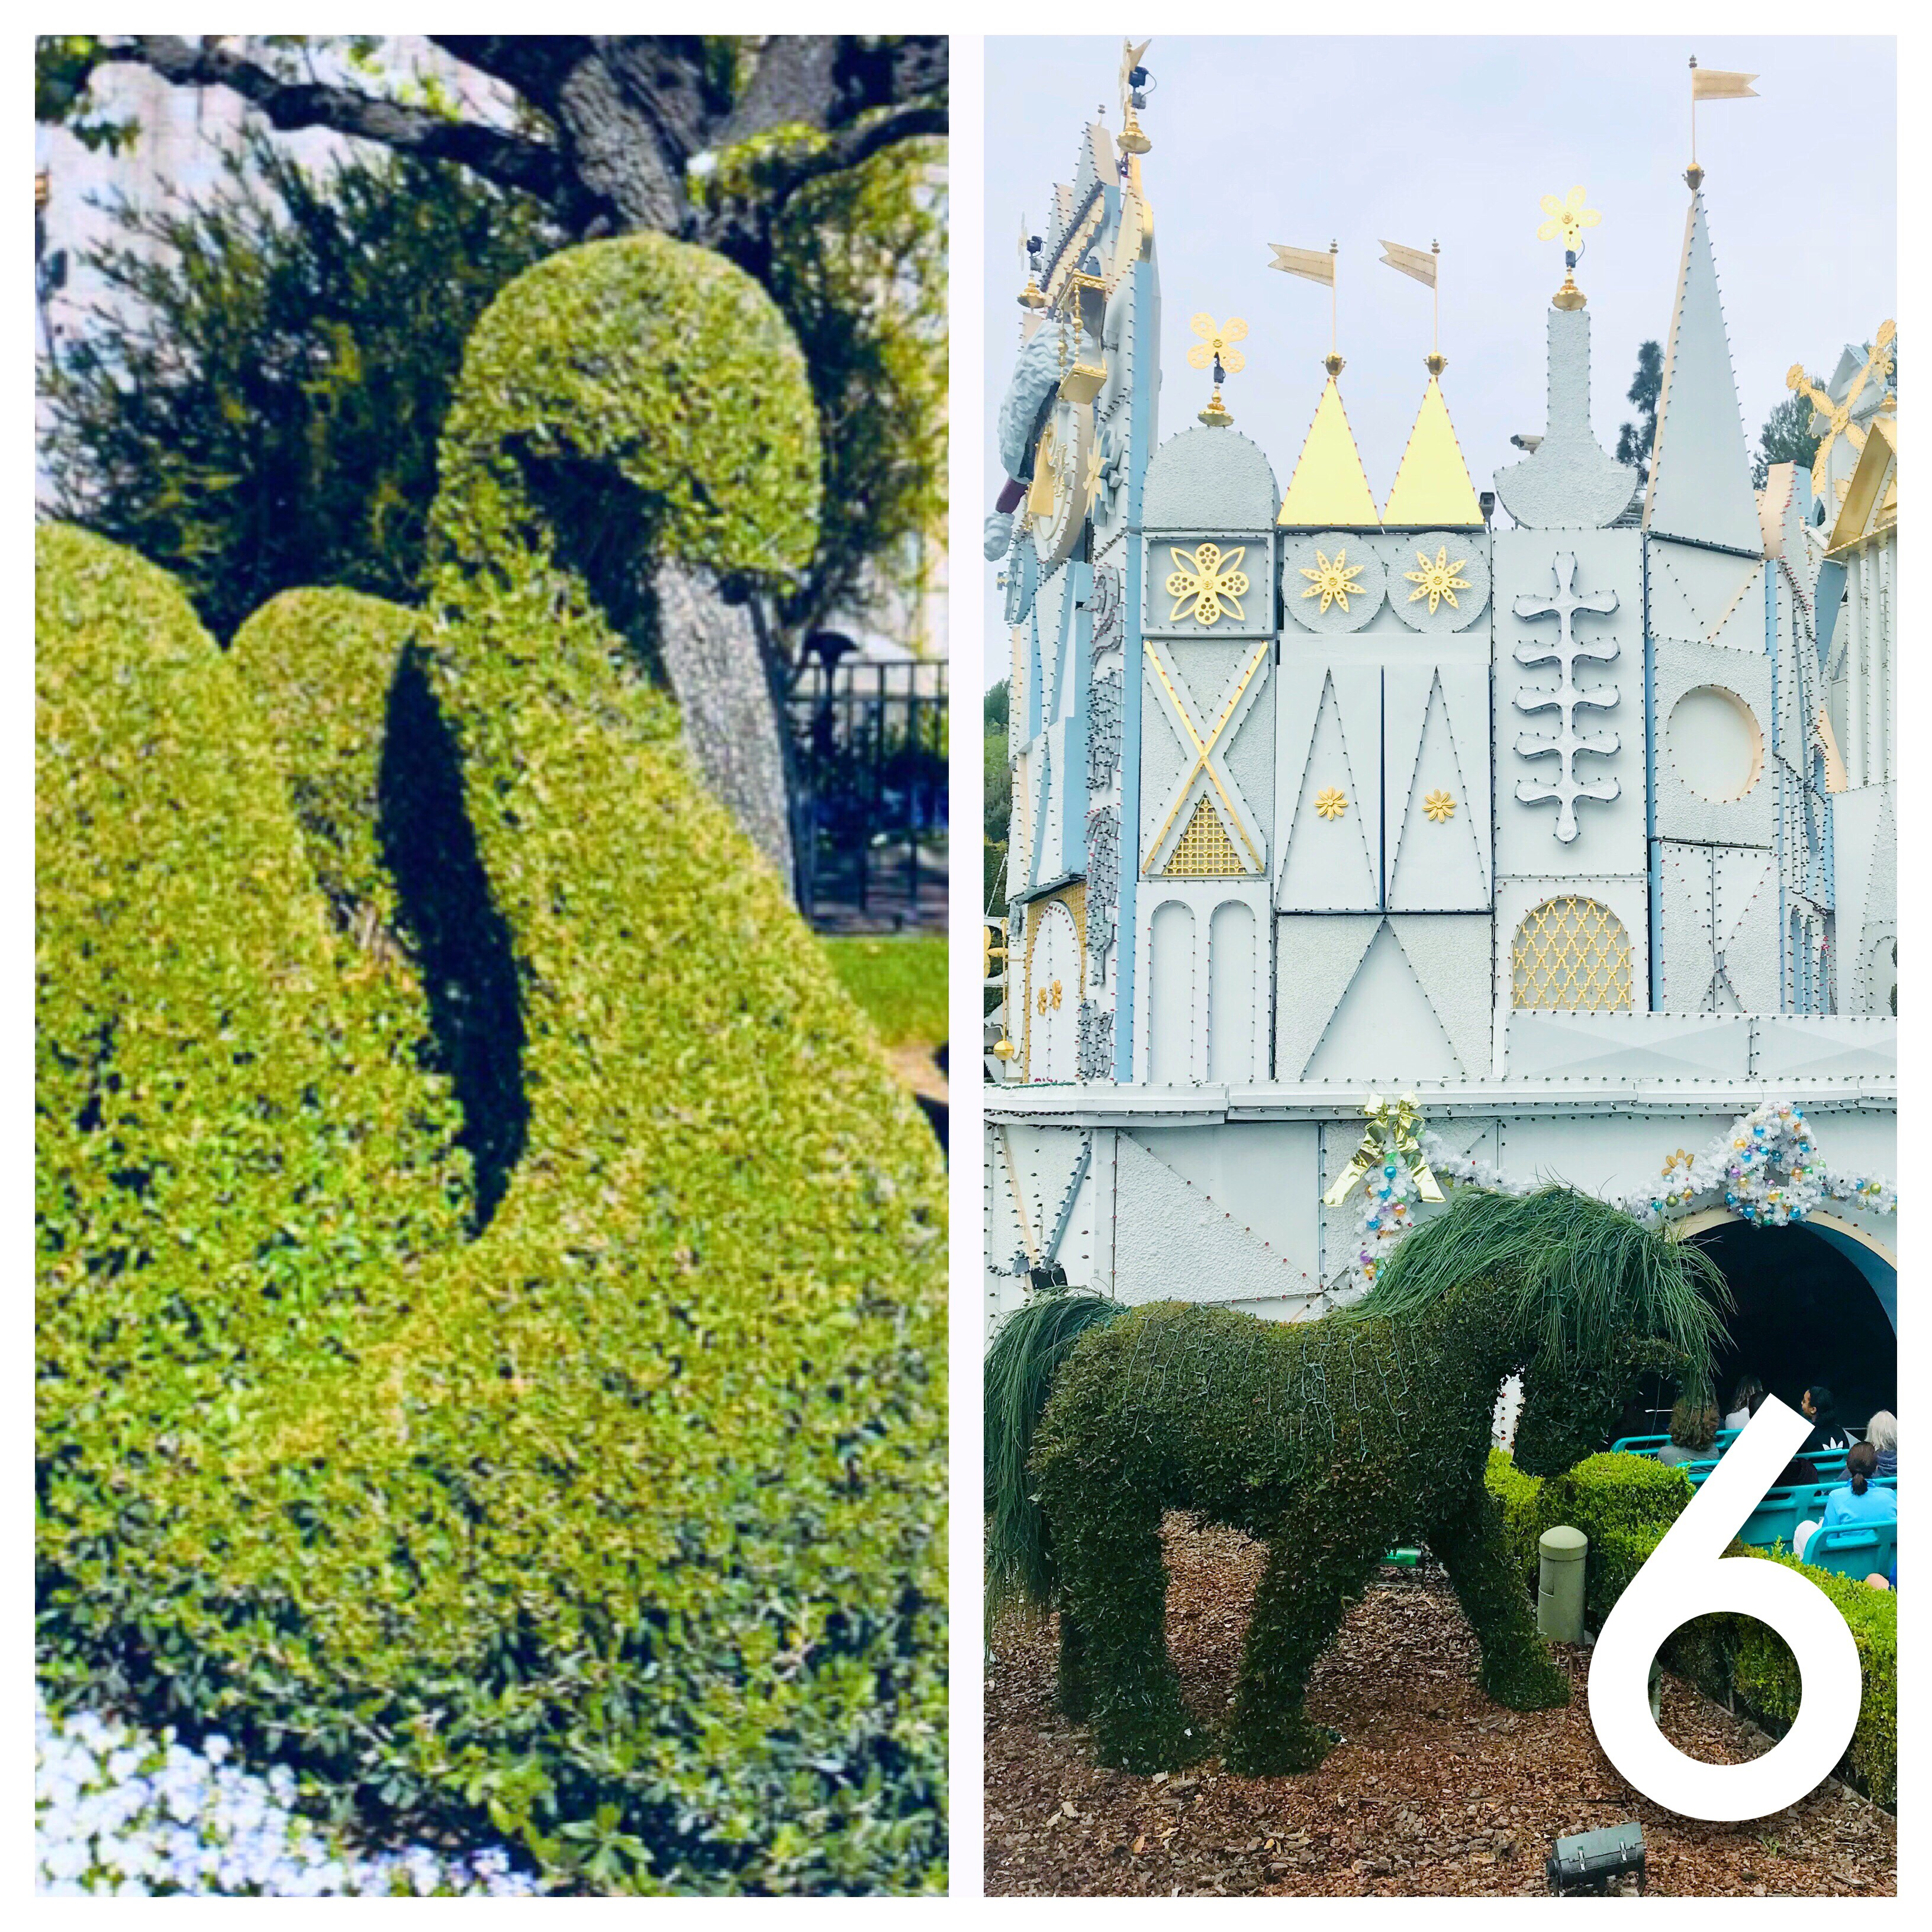 Topiaries and Disneyland; Discover 5 Secrets of Tomorrowland